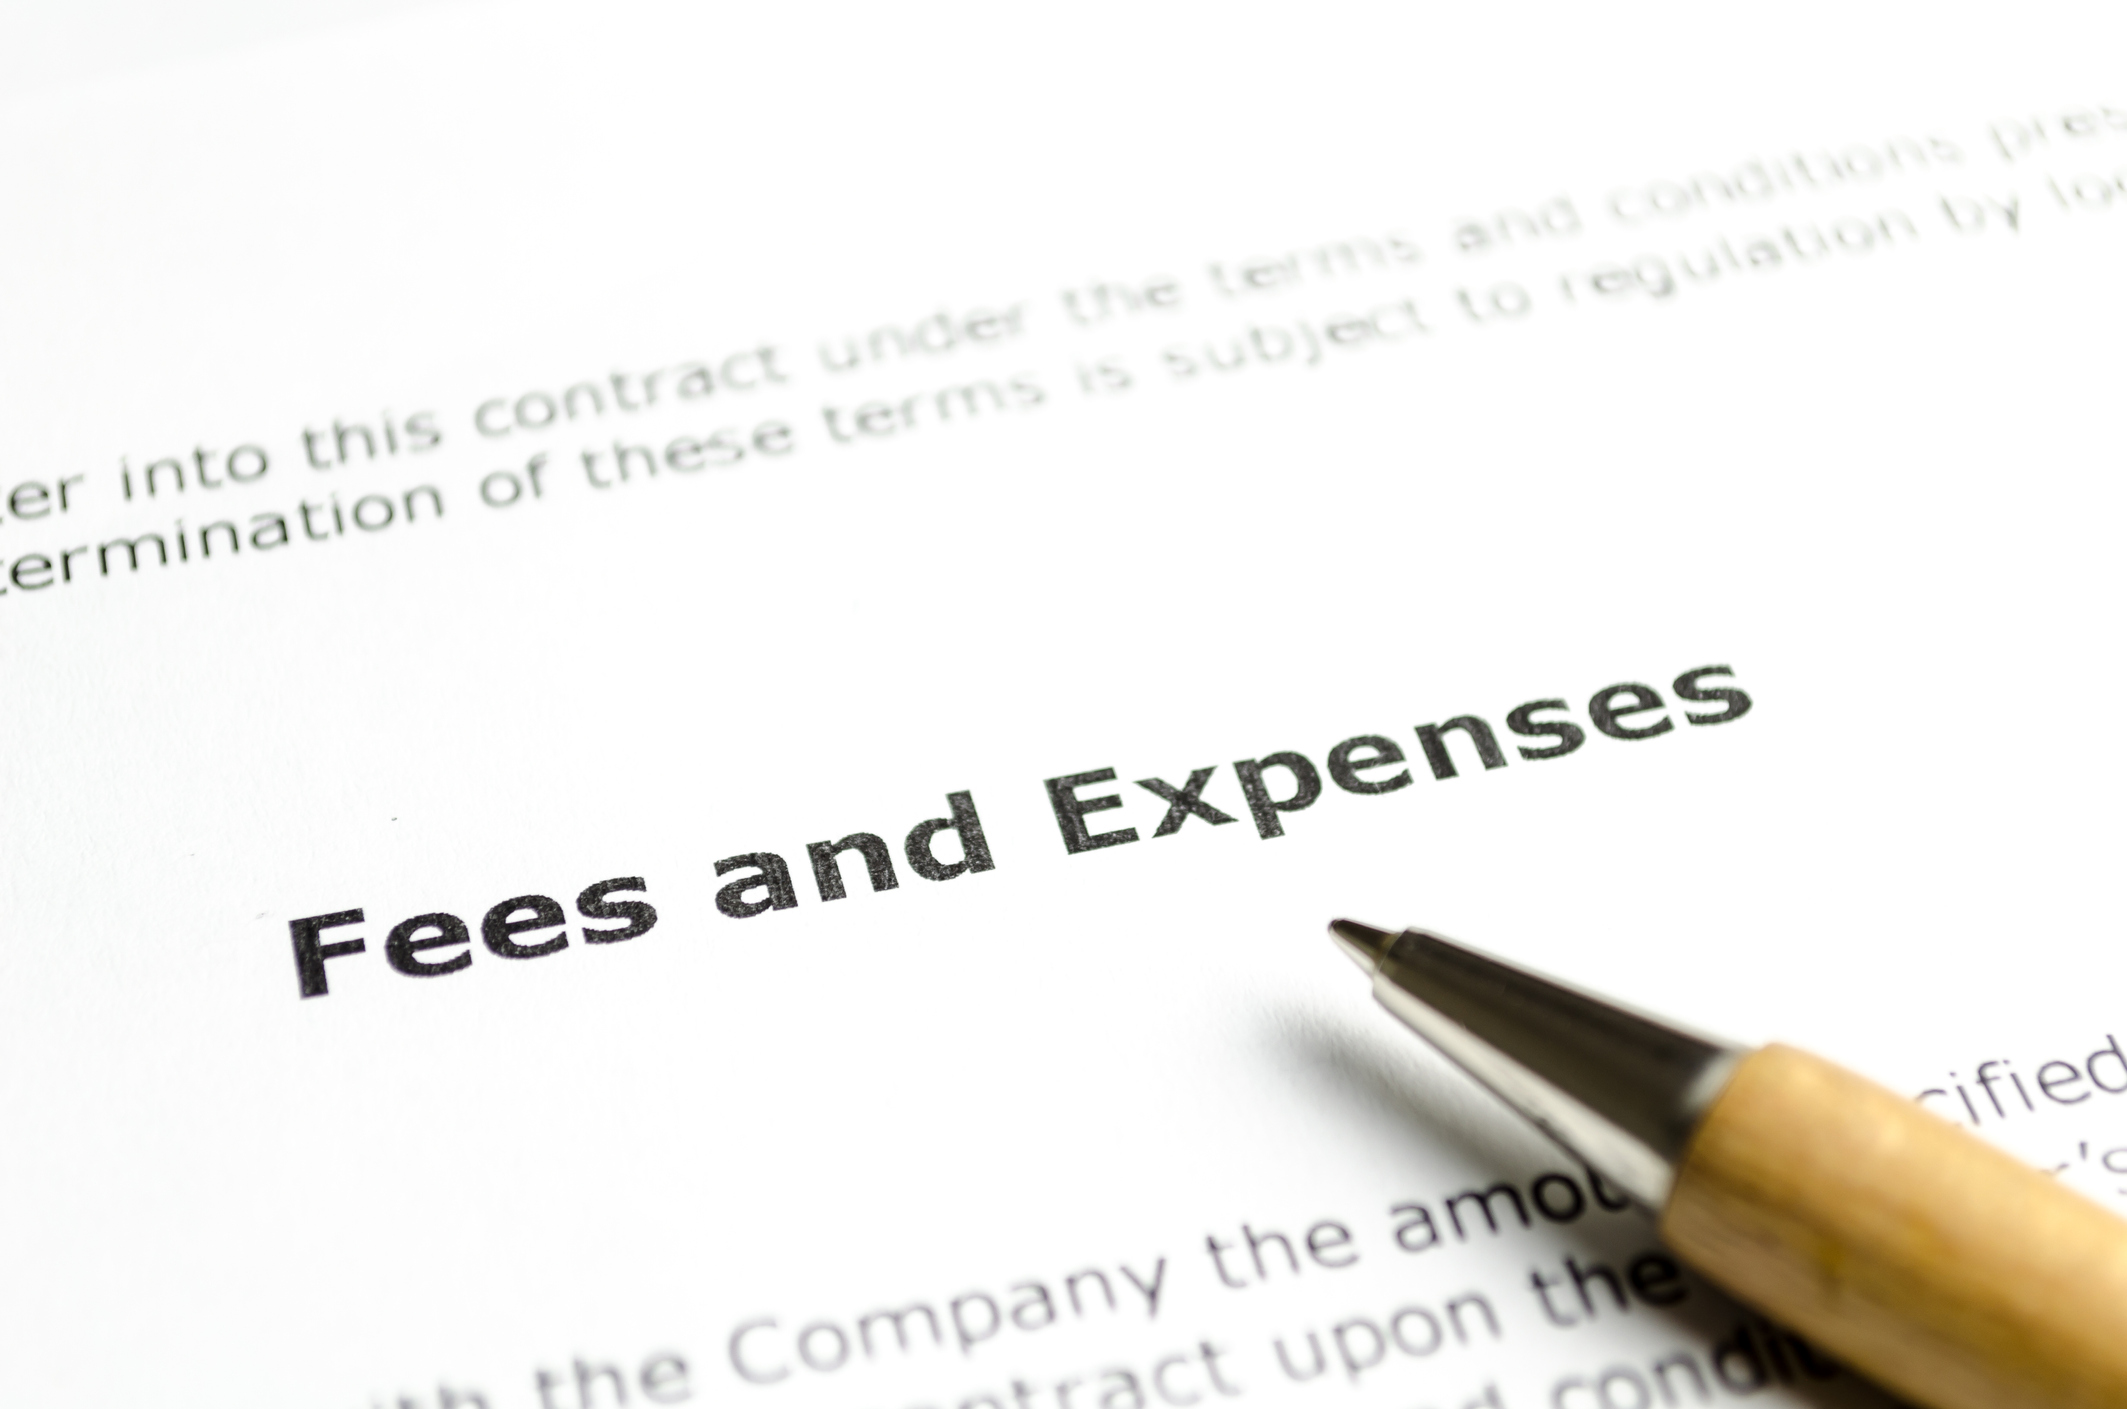 Fees and expenses with wooden pen